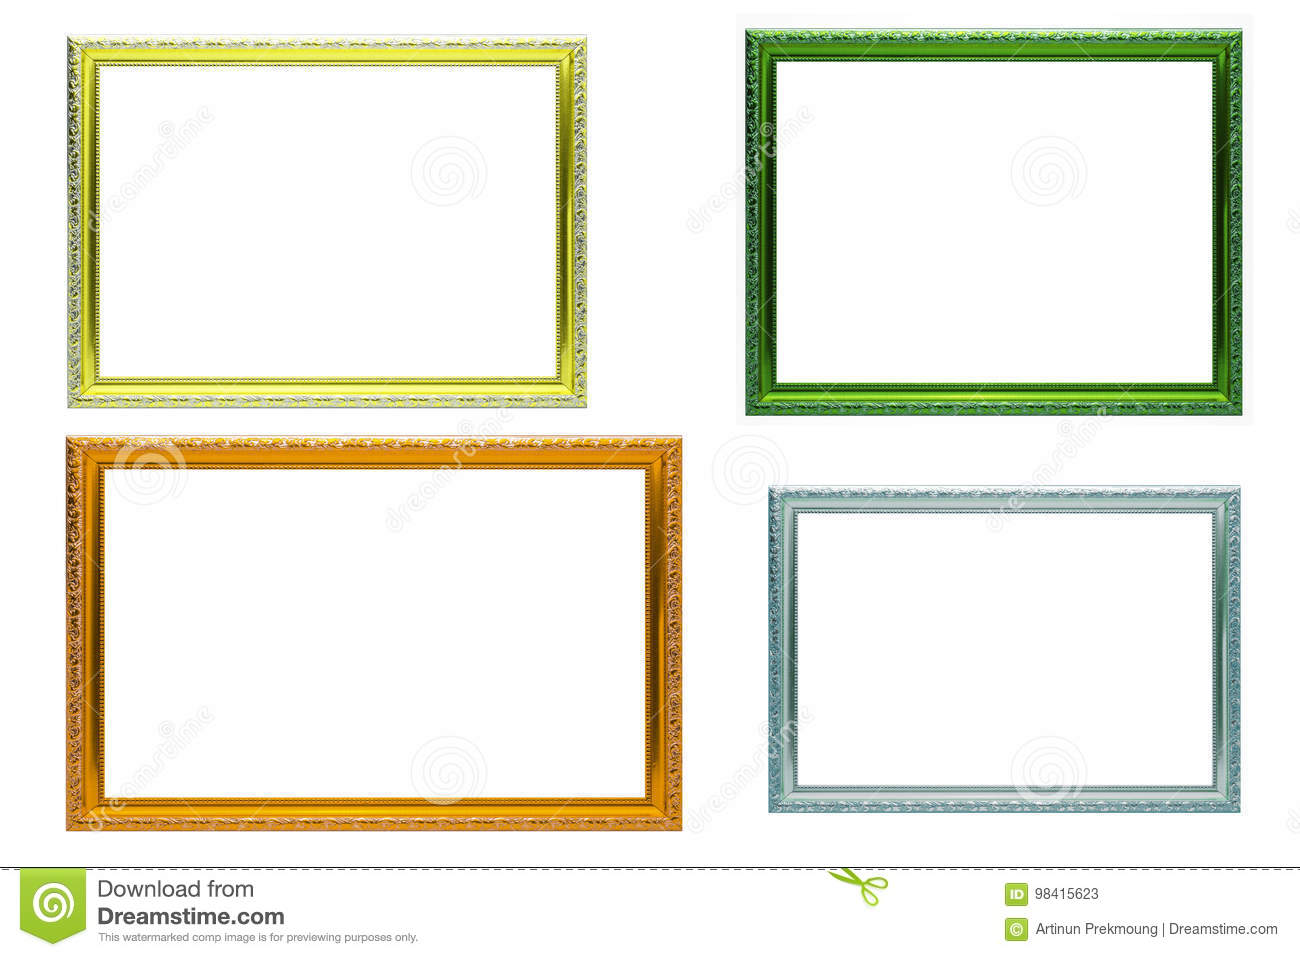 a9d59fc83ddc Set of colorful frames vintage style isolated on white background. More  similar stock images